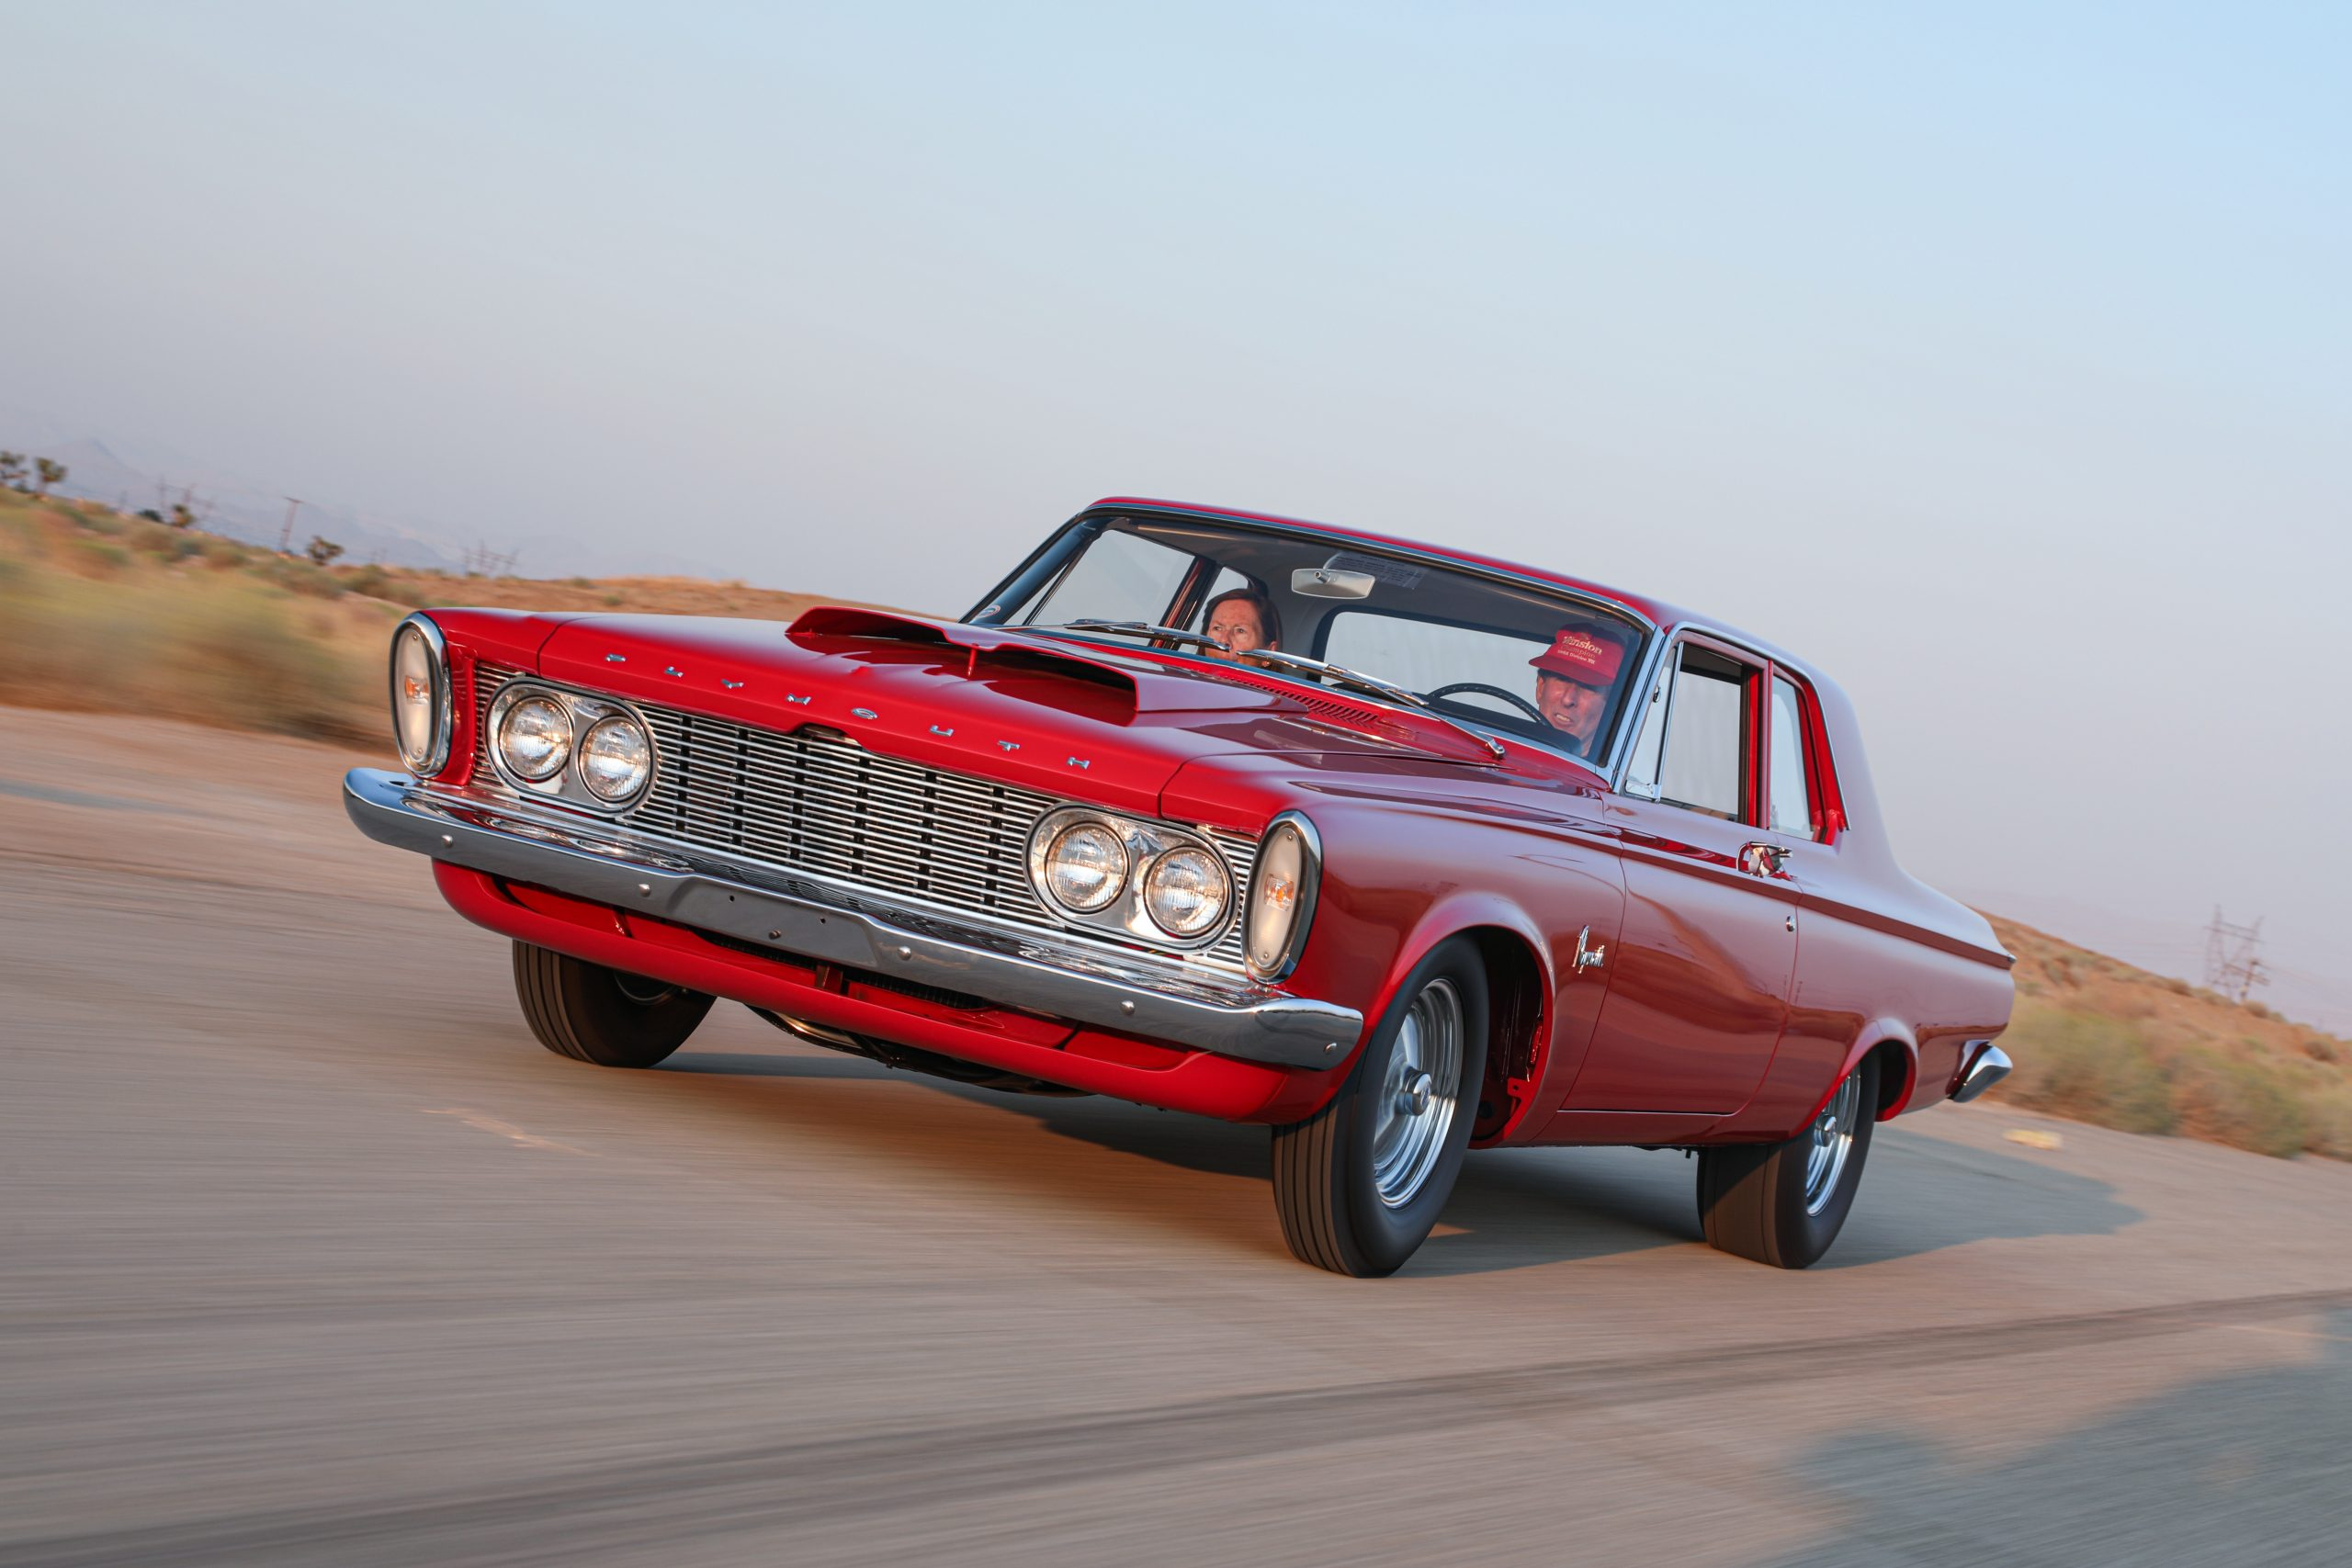 1963 Plymouth 426 Max Wedge lightweight driving